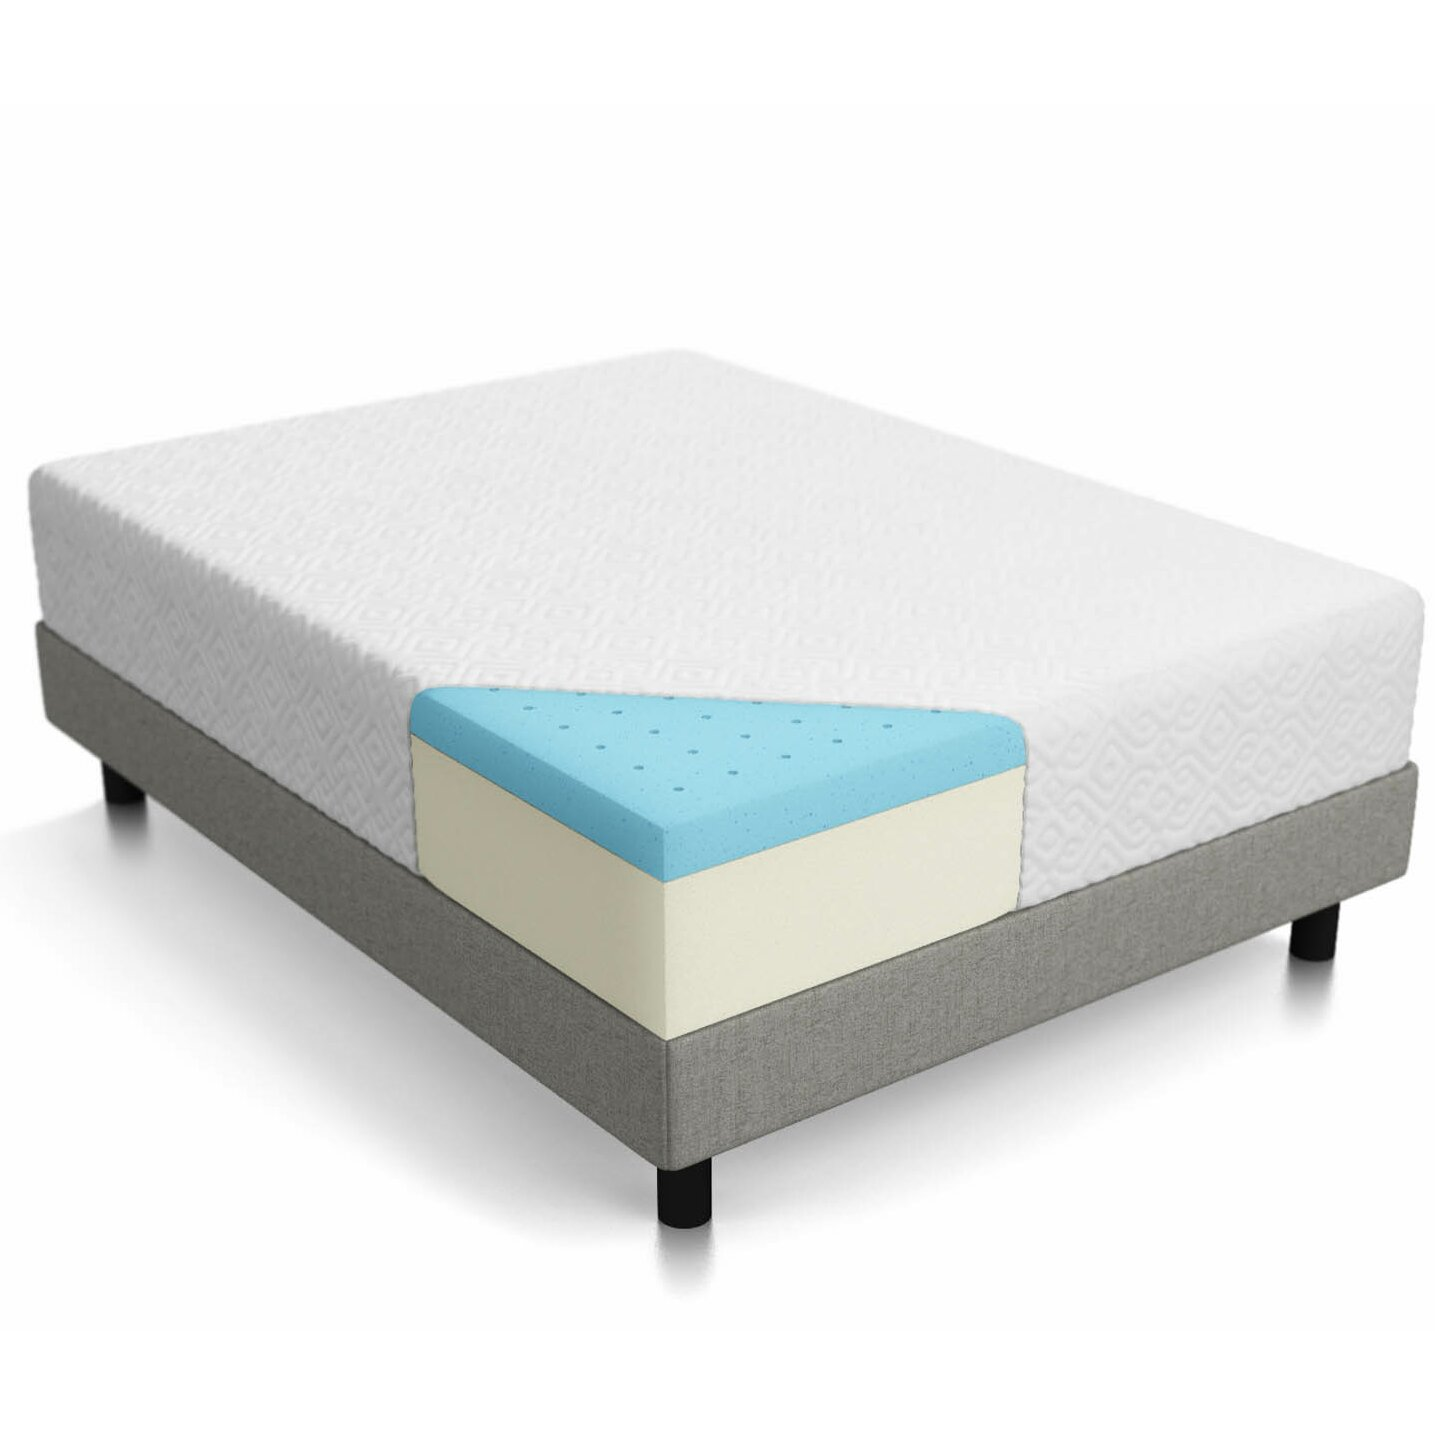 Lucid 12 memory foam mattress reviews wayfair Mattress sale memory foam